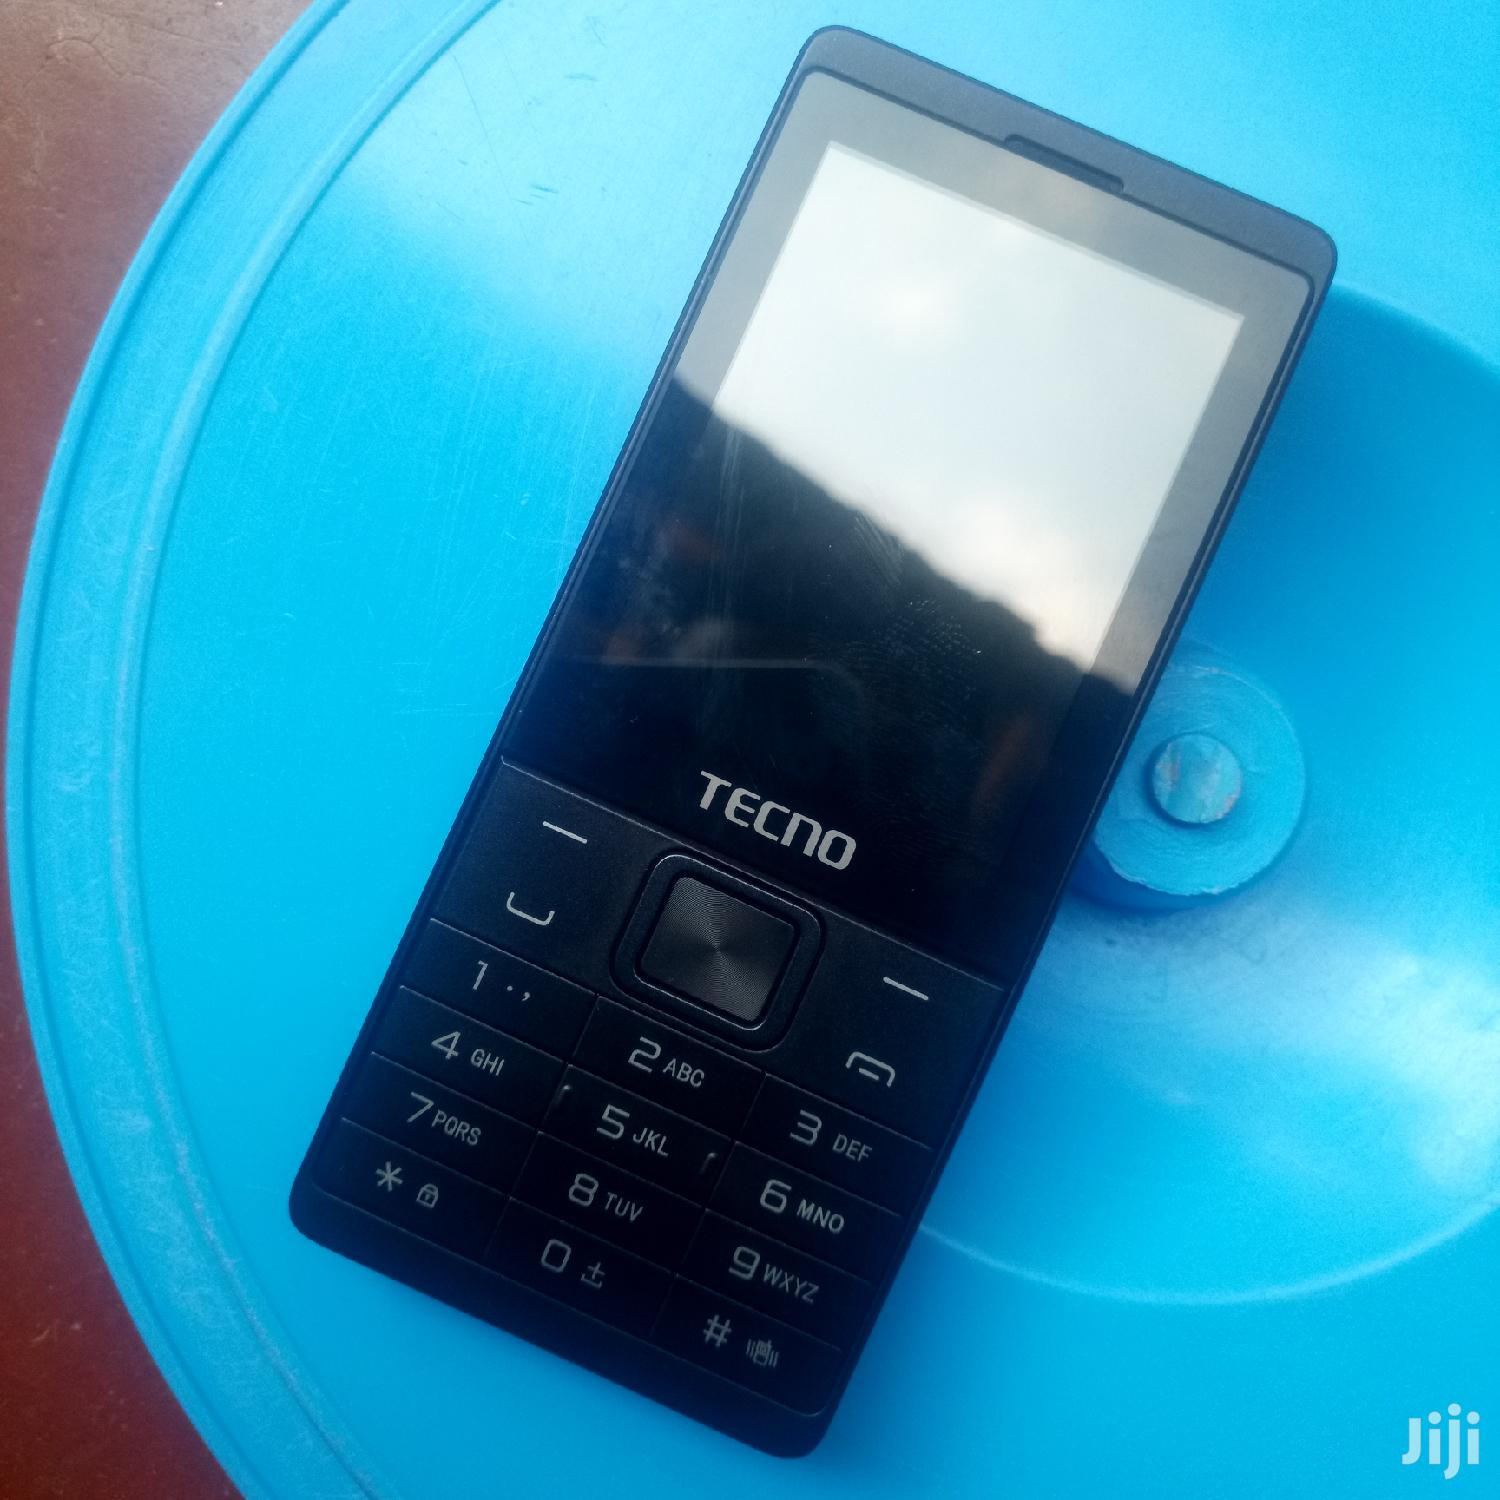 New Tecno T528 Black | Mobile Phones for sale in Kampala, Central Region, Uganda